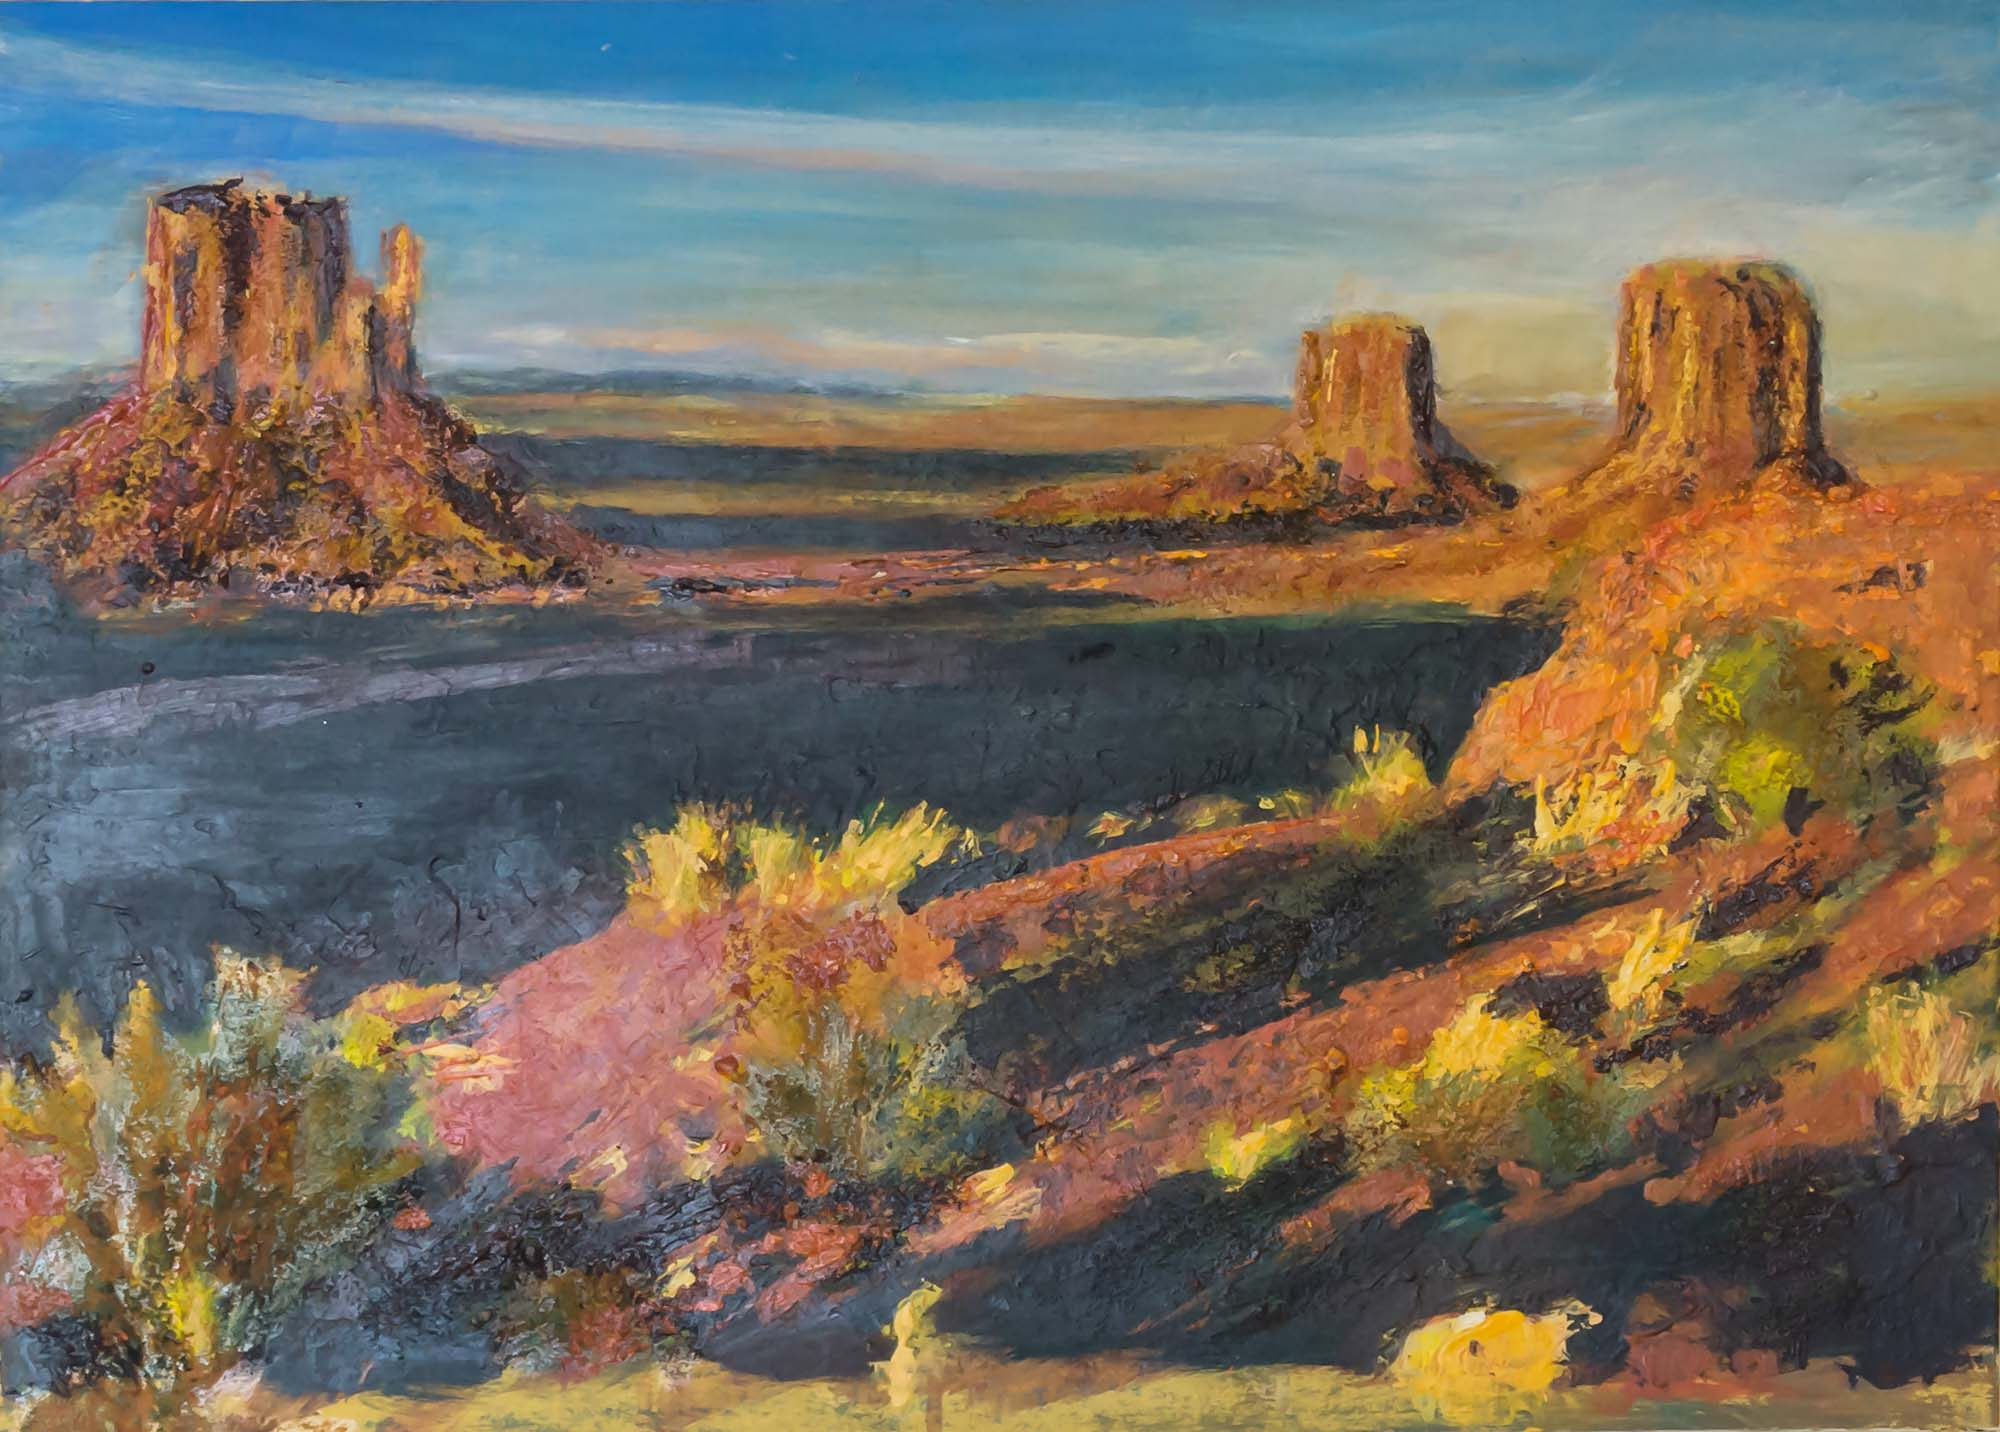 American Landscape with canyons and desert by Ria Kieboom